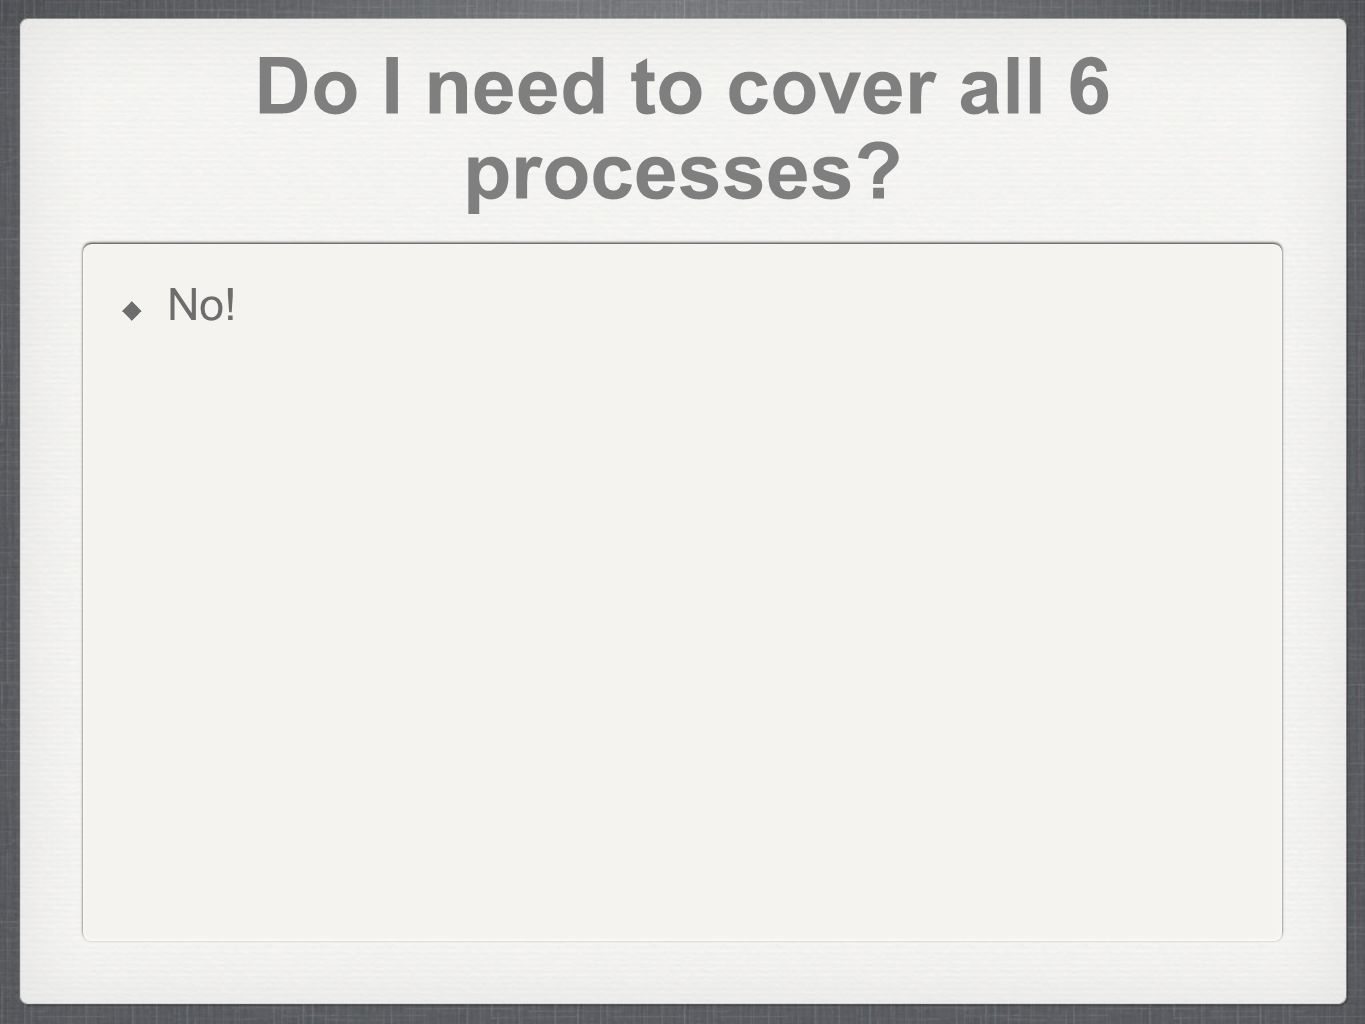 Do I need to cover all 6 processes